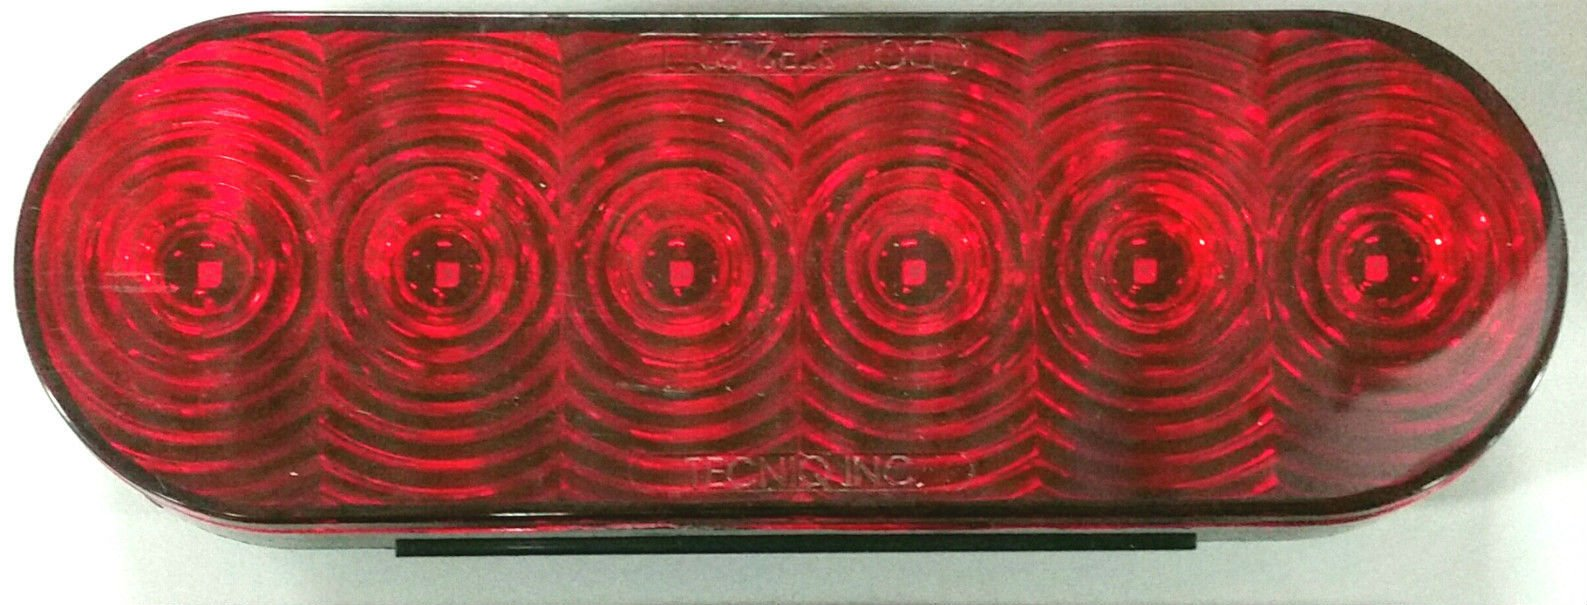 Triton 08478 Red LED Oval Tail Light by Triton